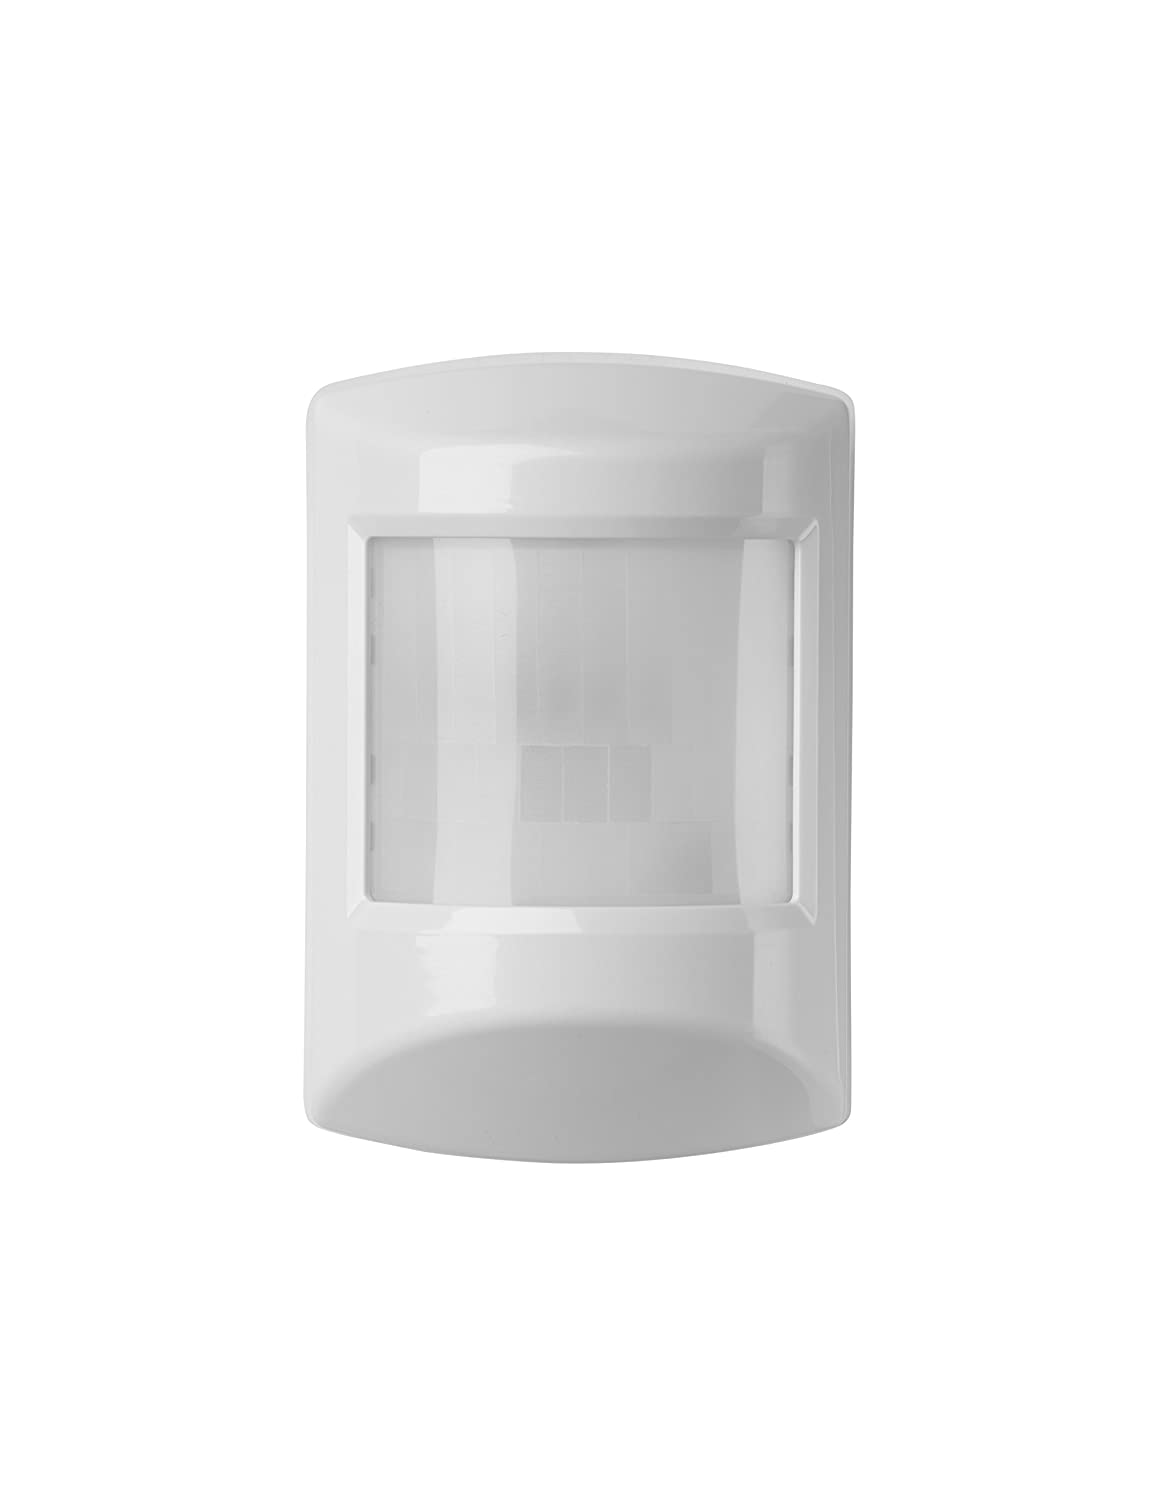 Ecolink Z-wave Plus Motion Detector